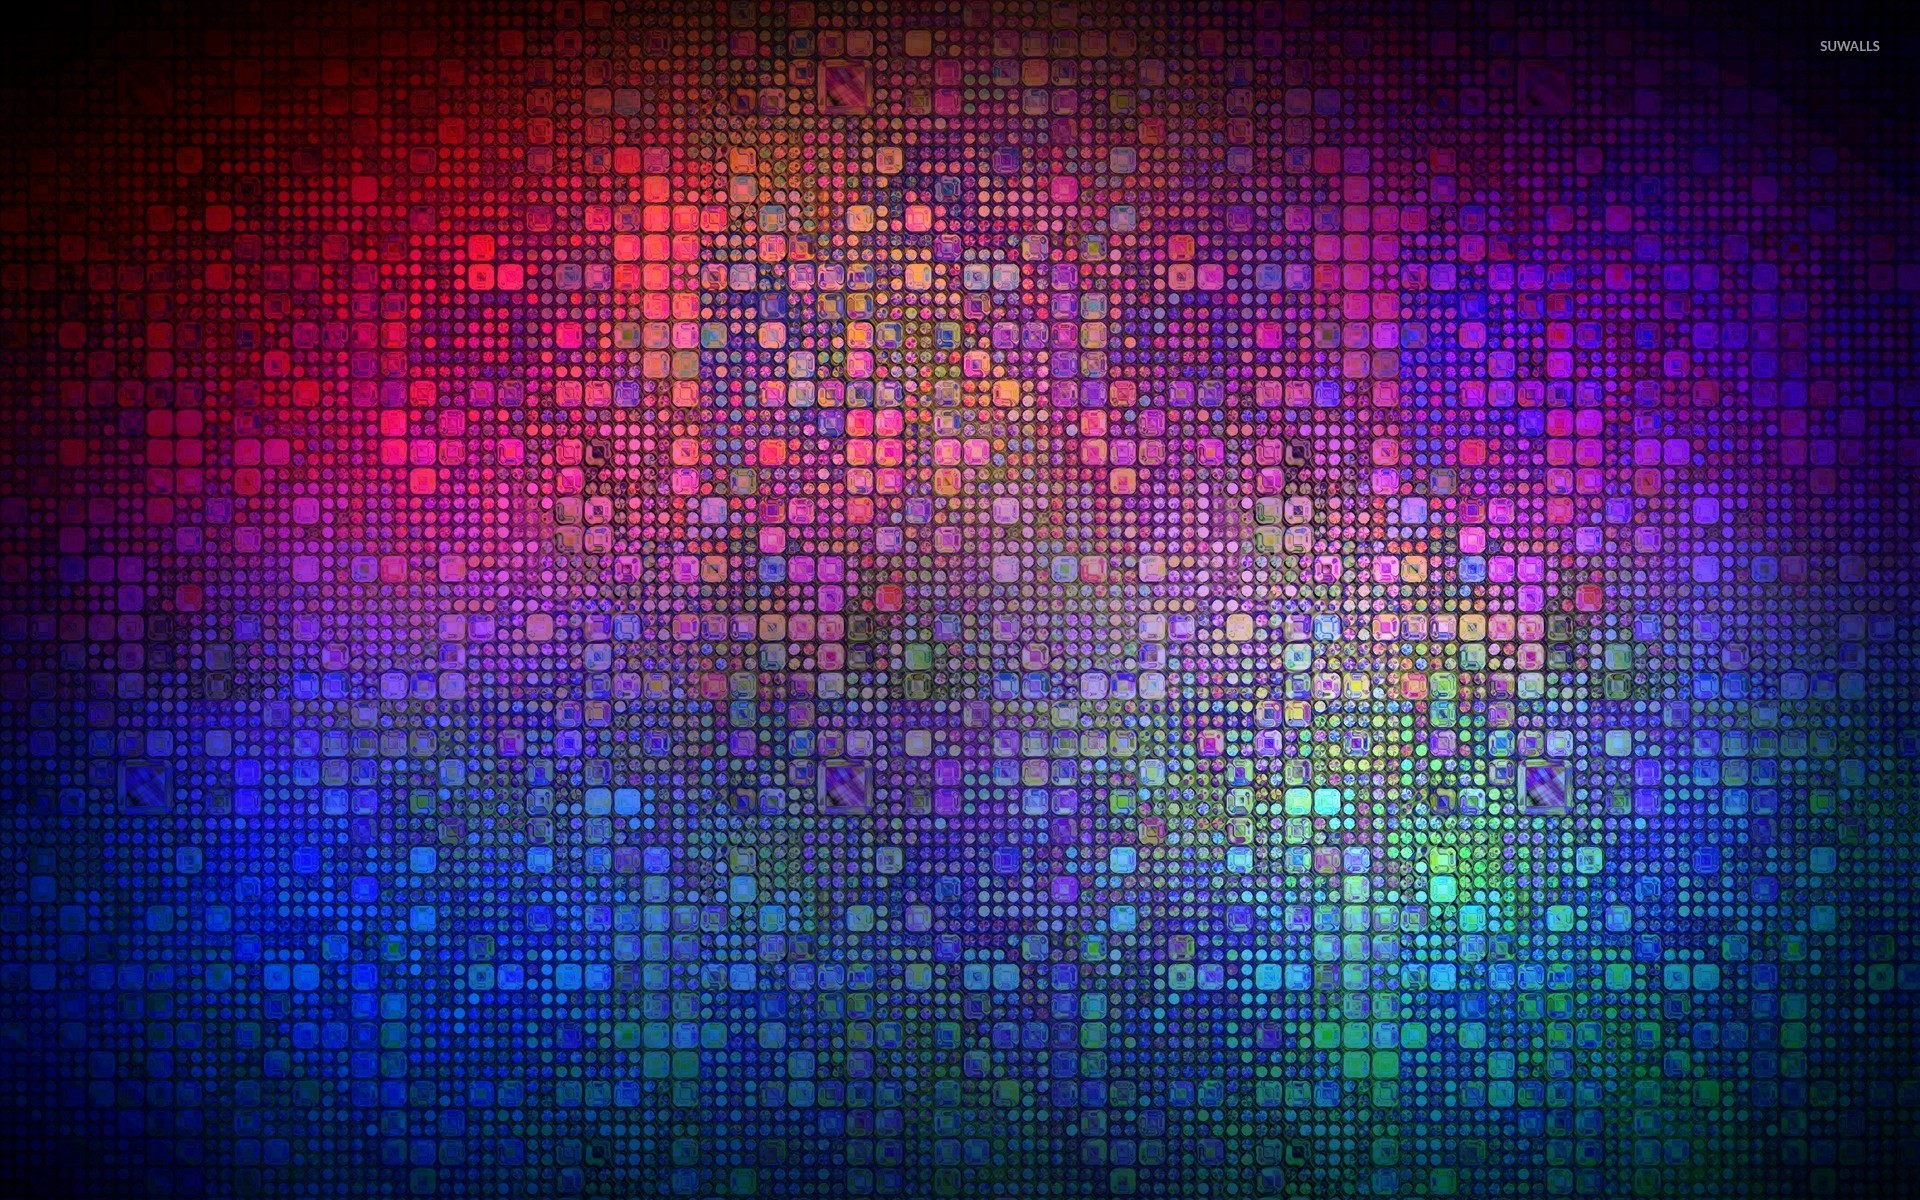 Multicolored mosaic wallpaper - Abstract wallpapers - #26924